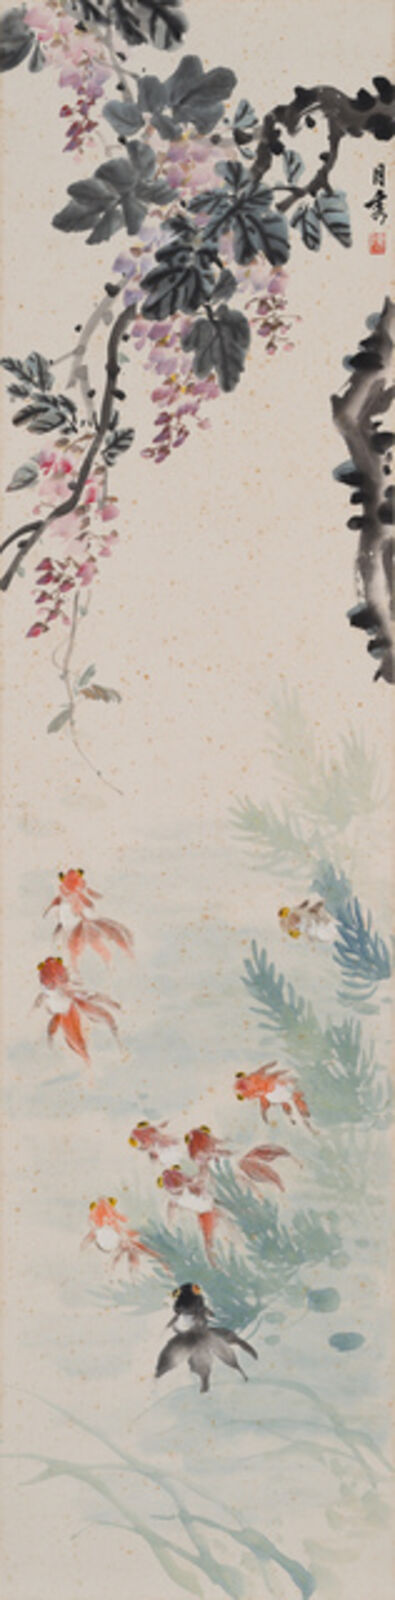 Chen Yue Xiu, 'Blossoms and Goldfish'